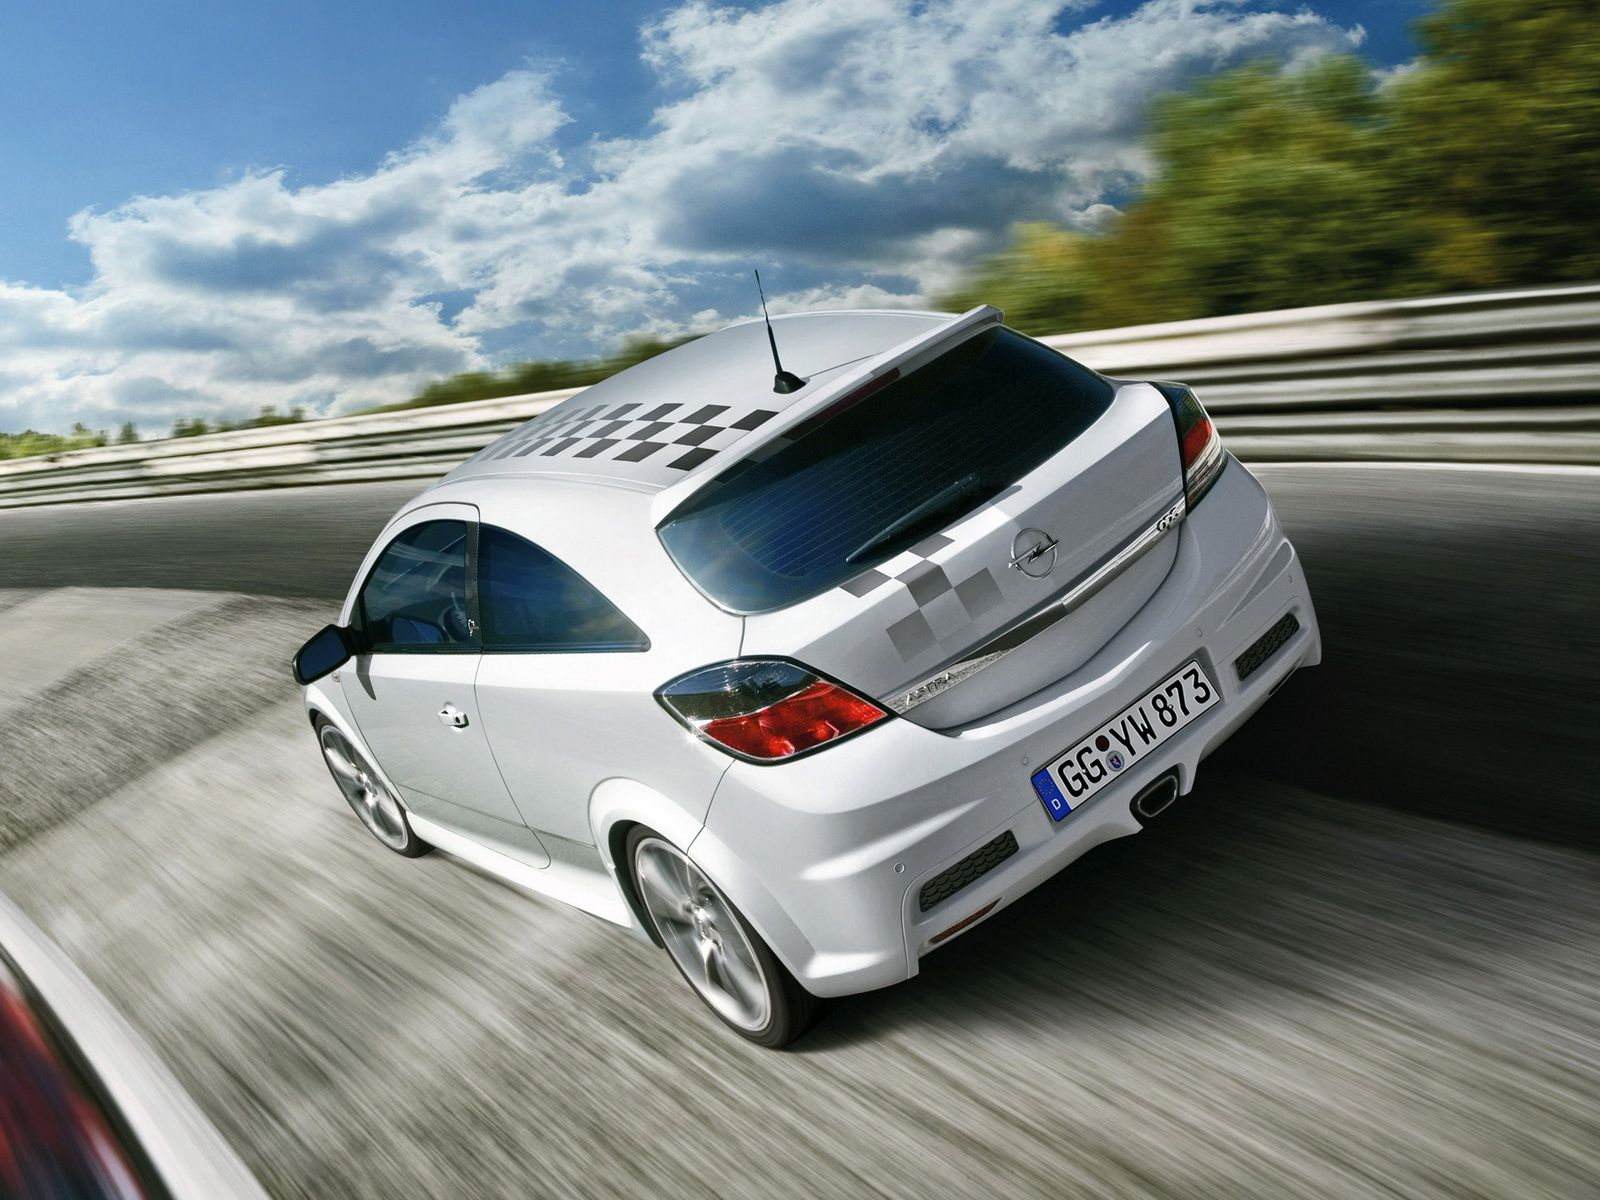 Opel Astra GTC wallpapers and images - wallpapers, pictures, photos